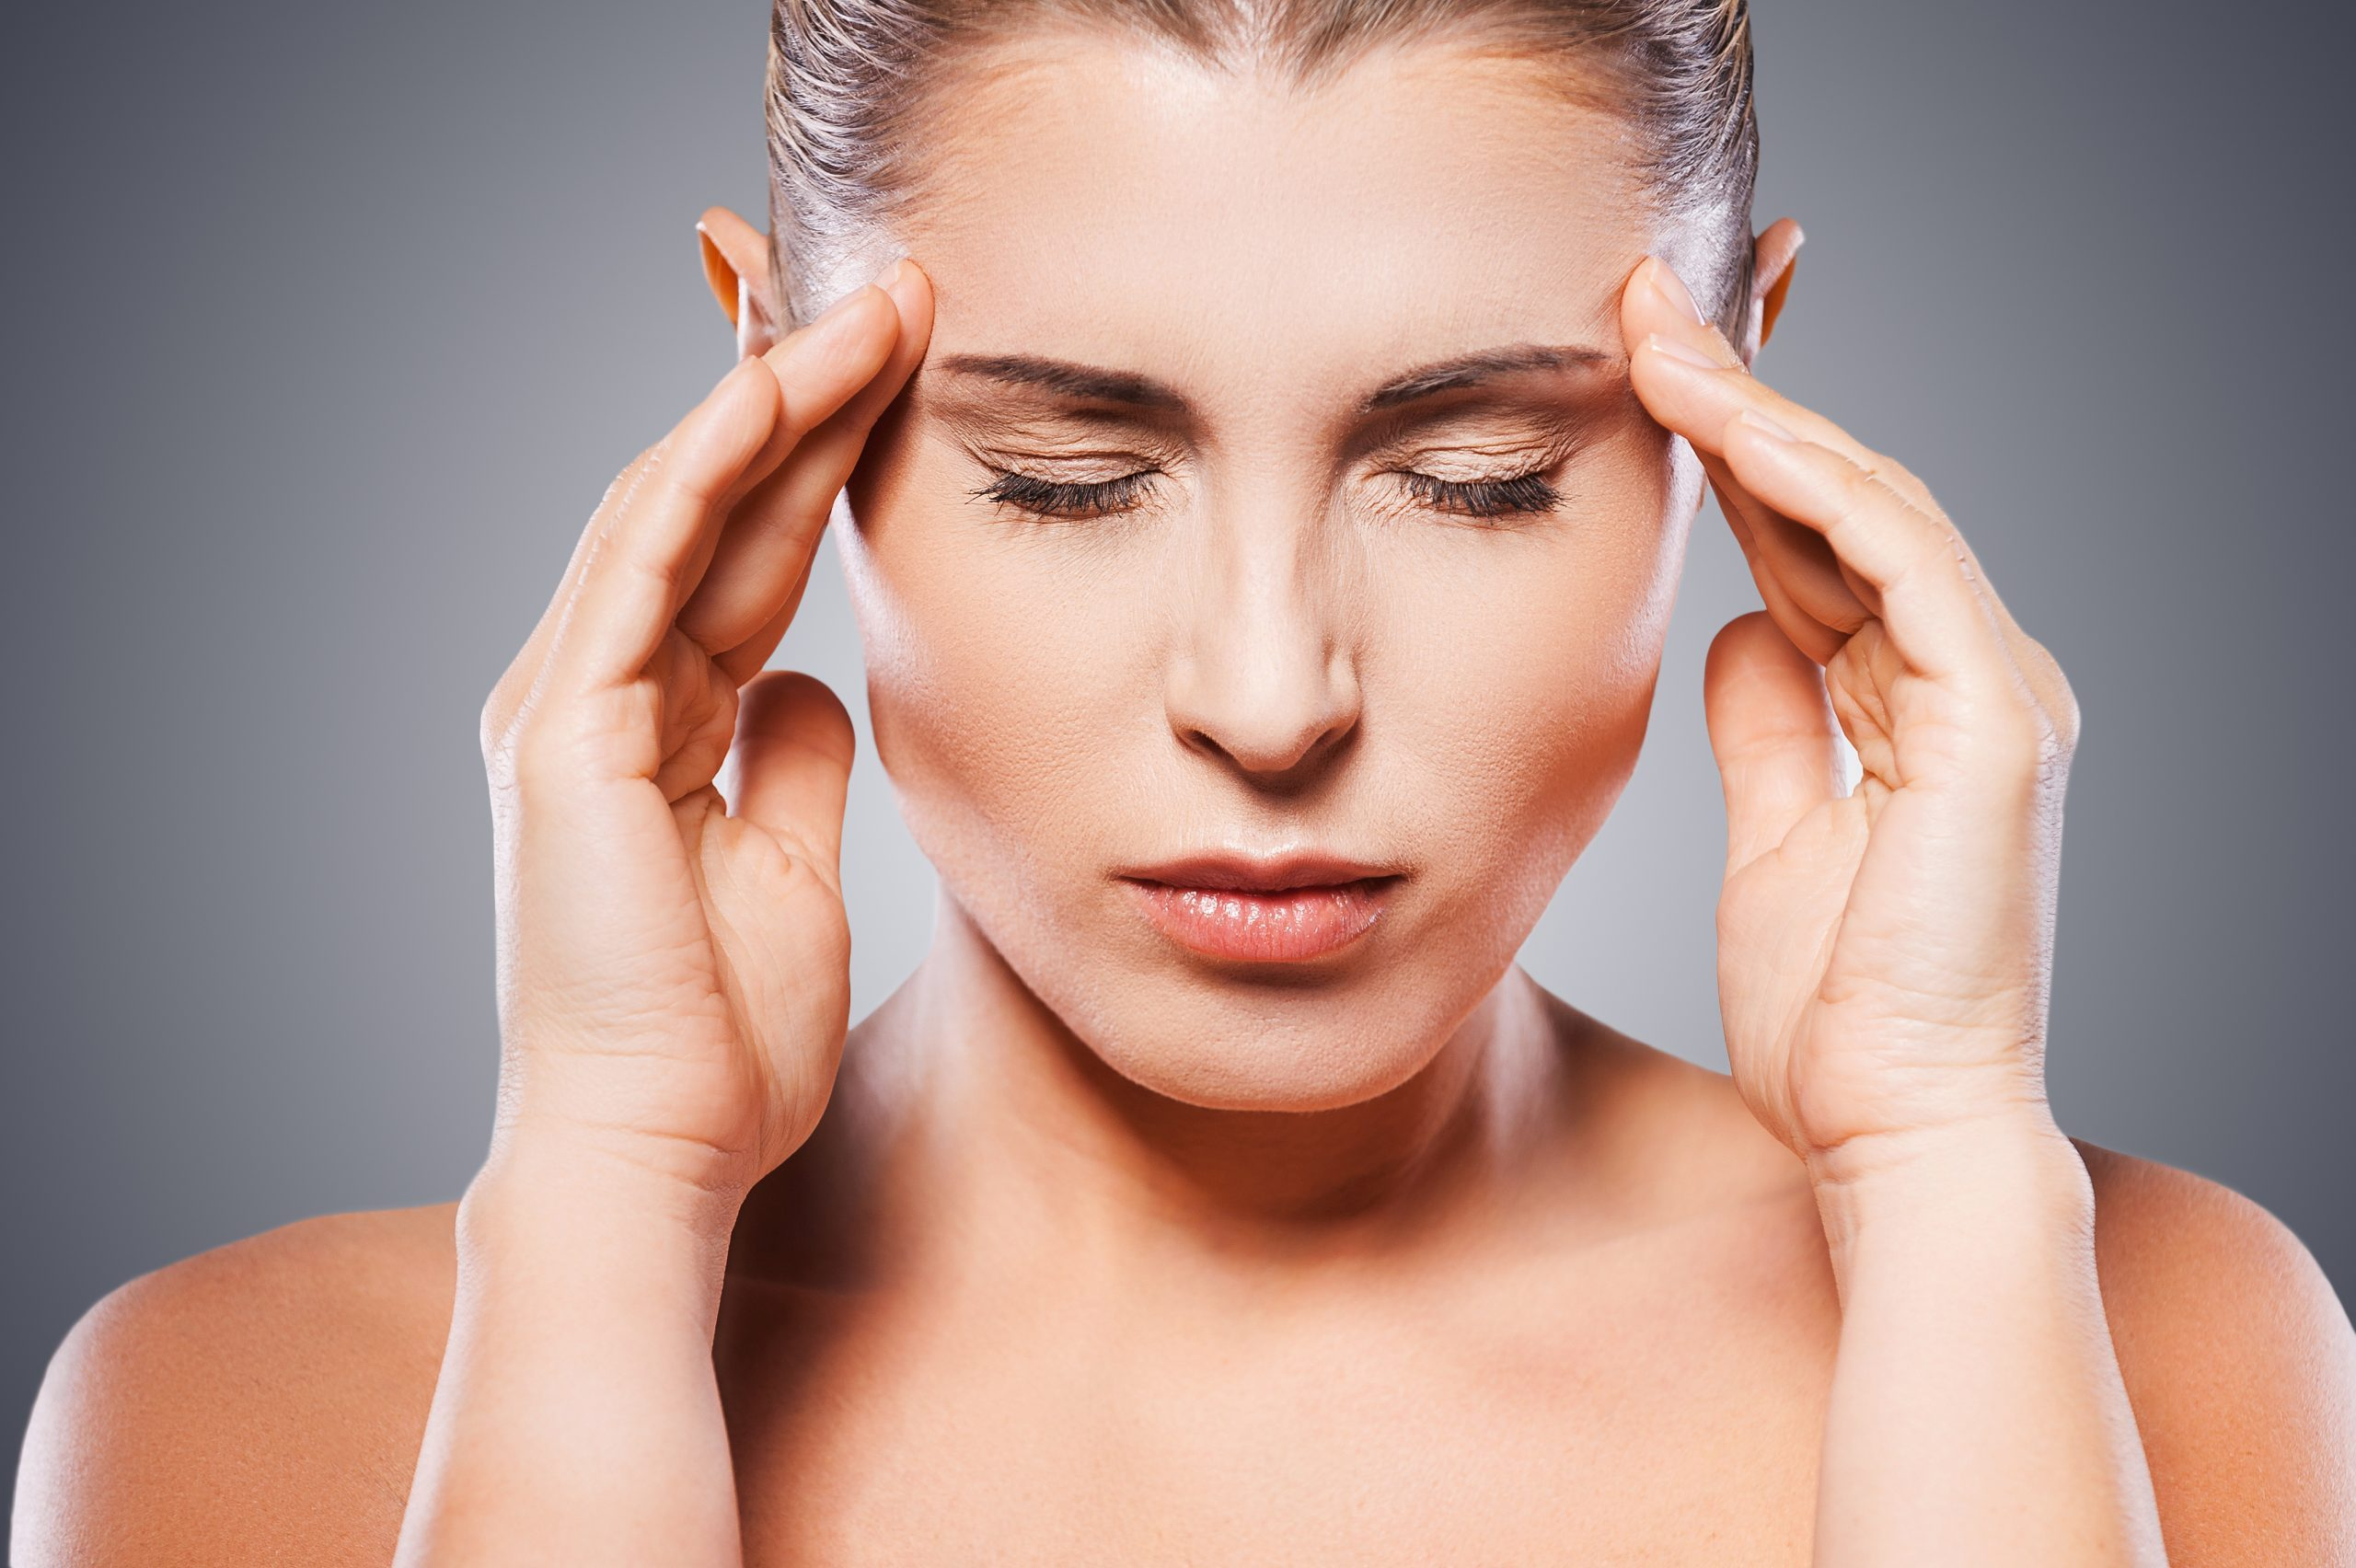 Migraine headaches are treatable with the Soaz method